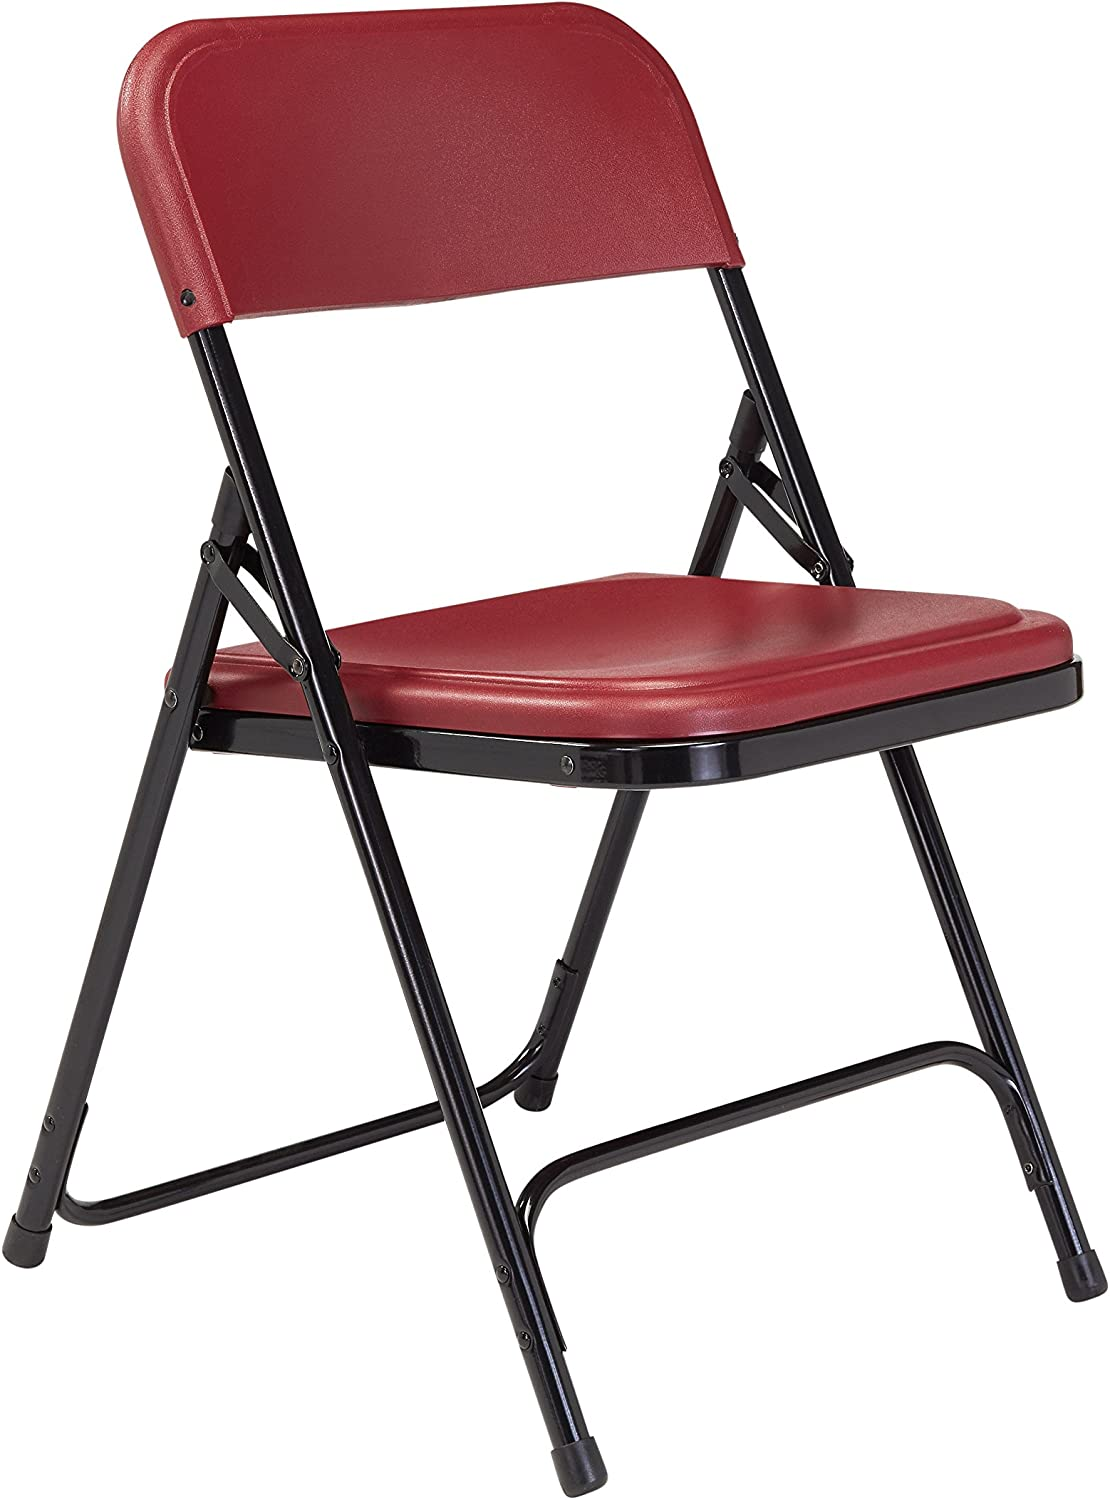 National Public Seating 800 Series Steel Frame Premium Light Weight Plastic Seat and Back Stacking Folding Chair with Double Brace, 480-Pound Capacity, Burgundy Black, Carton of 4